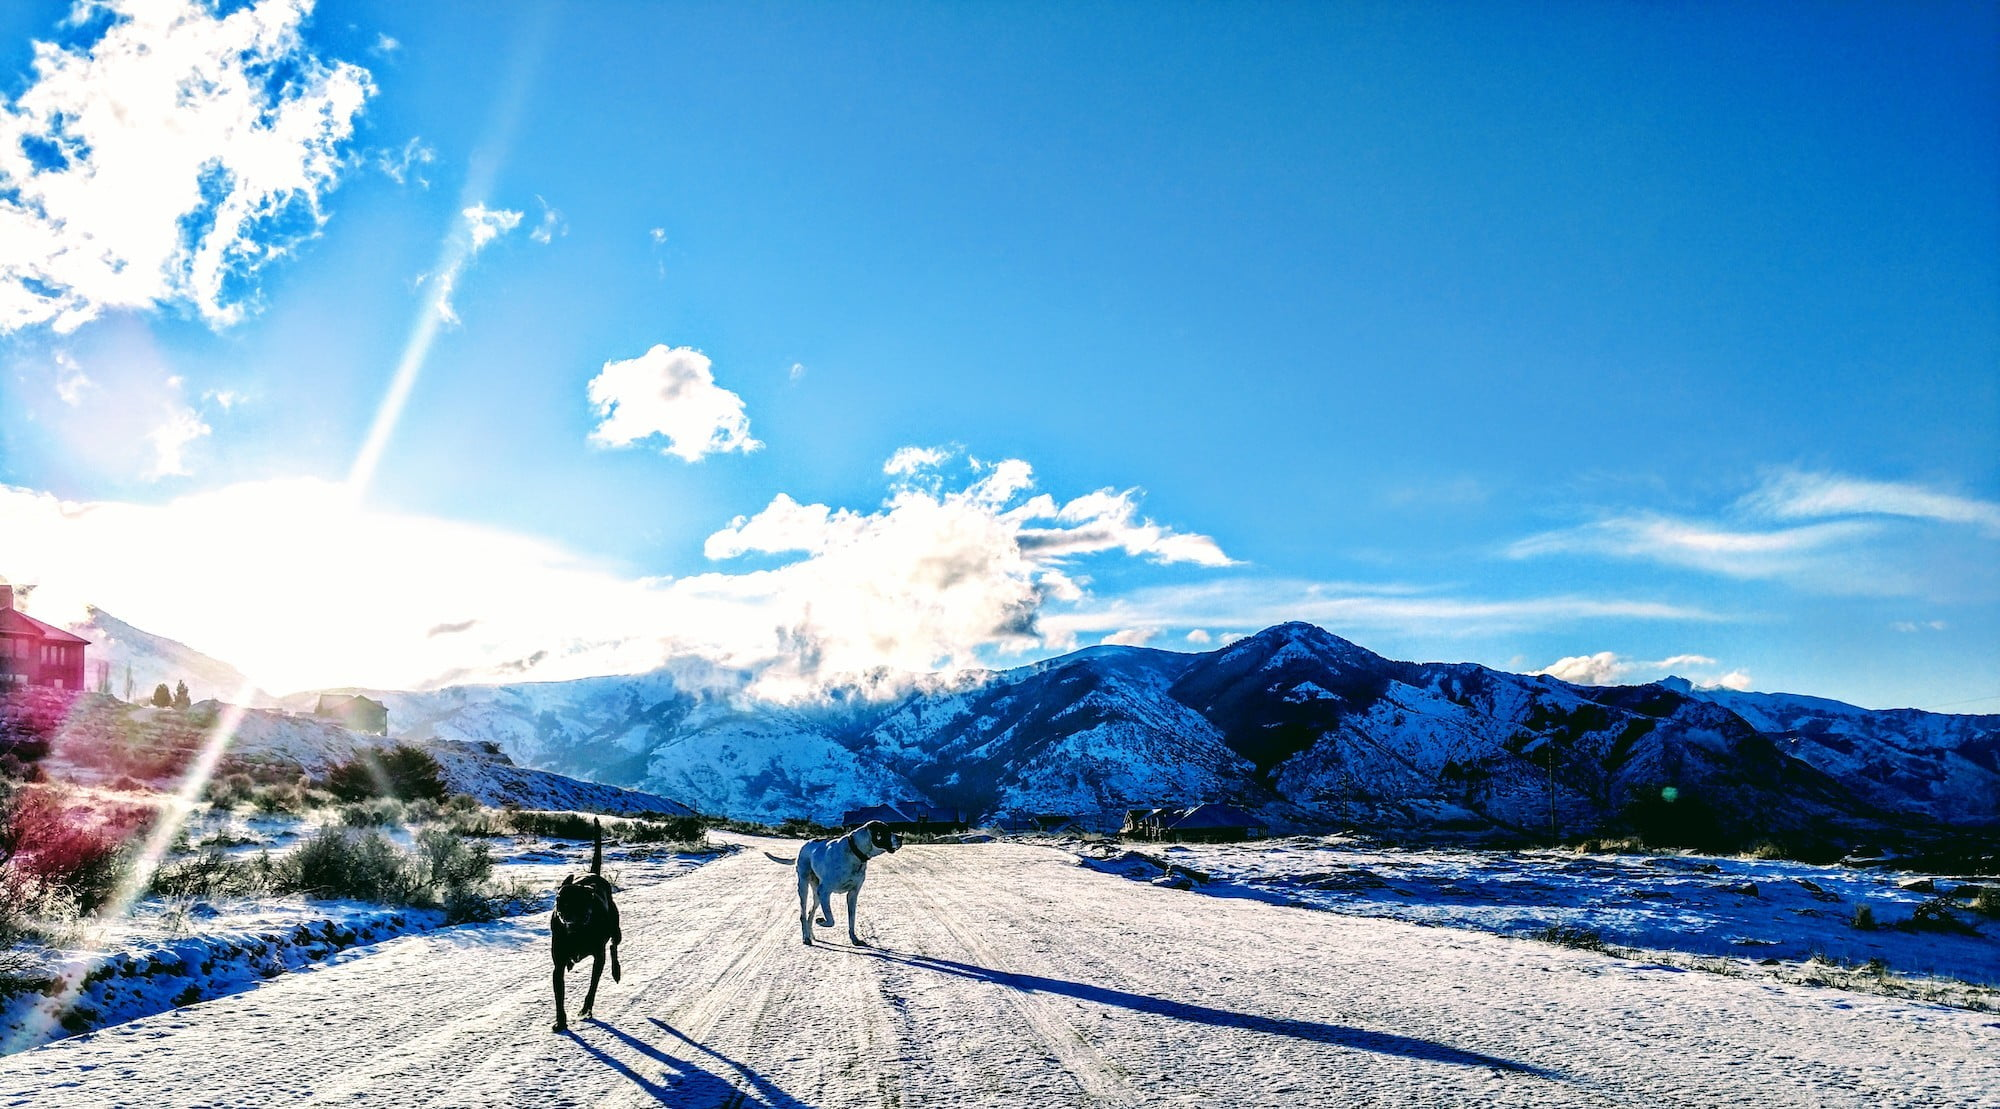 a black dog and a white dog (further away) sun along a snowy path with winter mountains behind them, underneath a mostly clear s